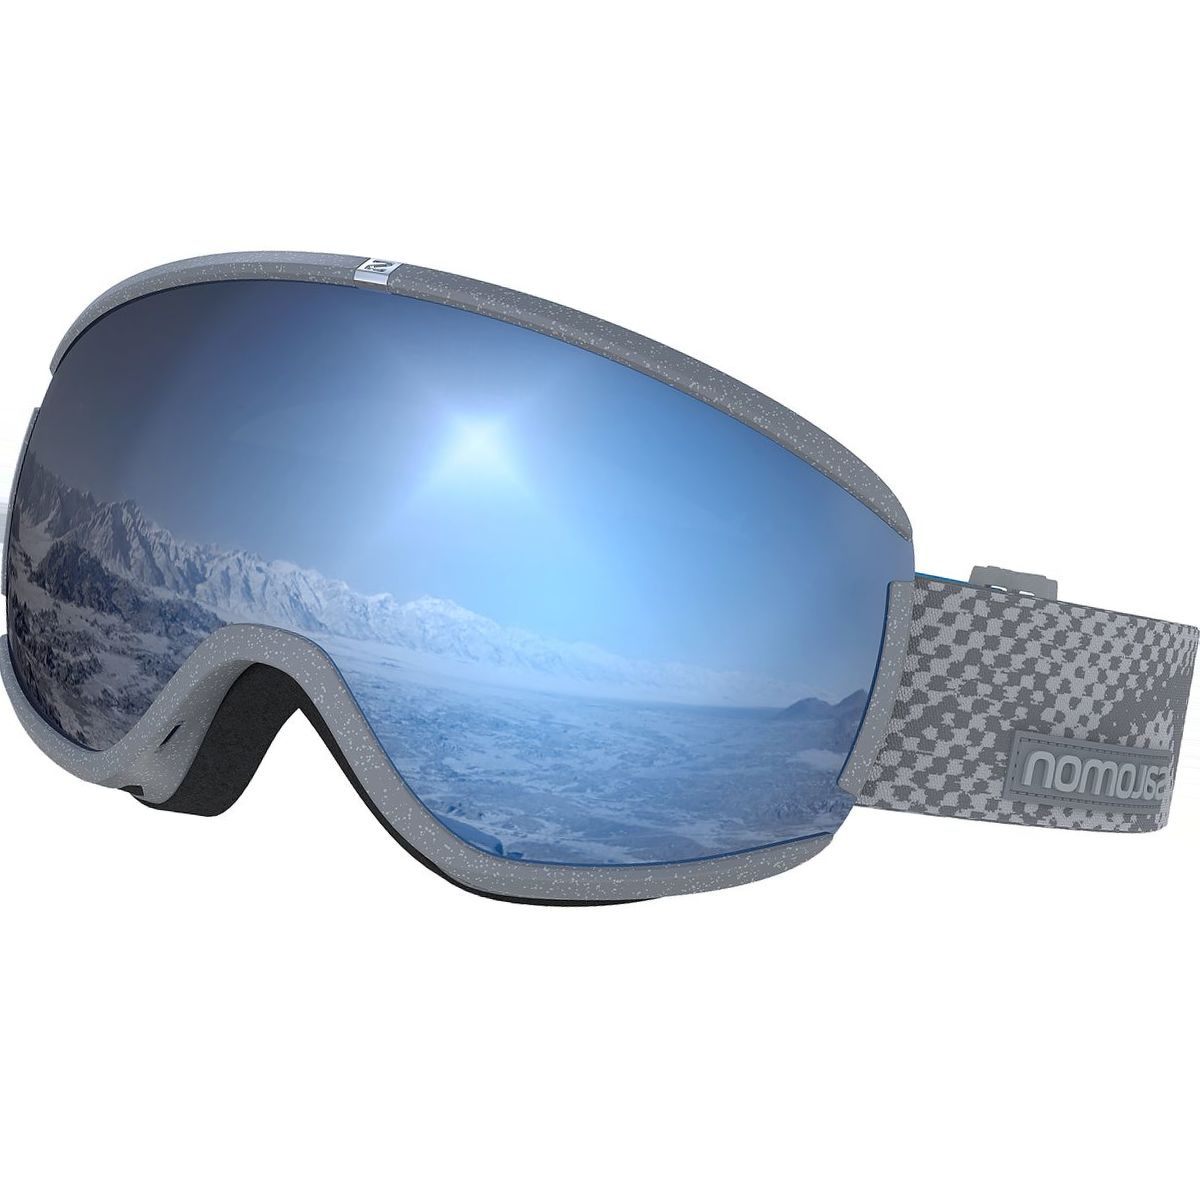 Salomon Ivy Sigma Goggles - Men's